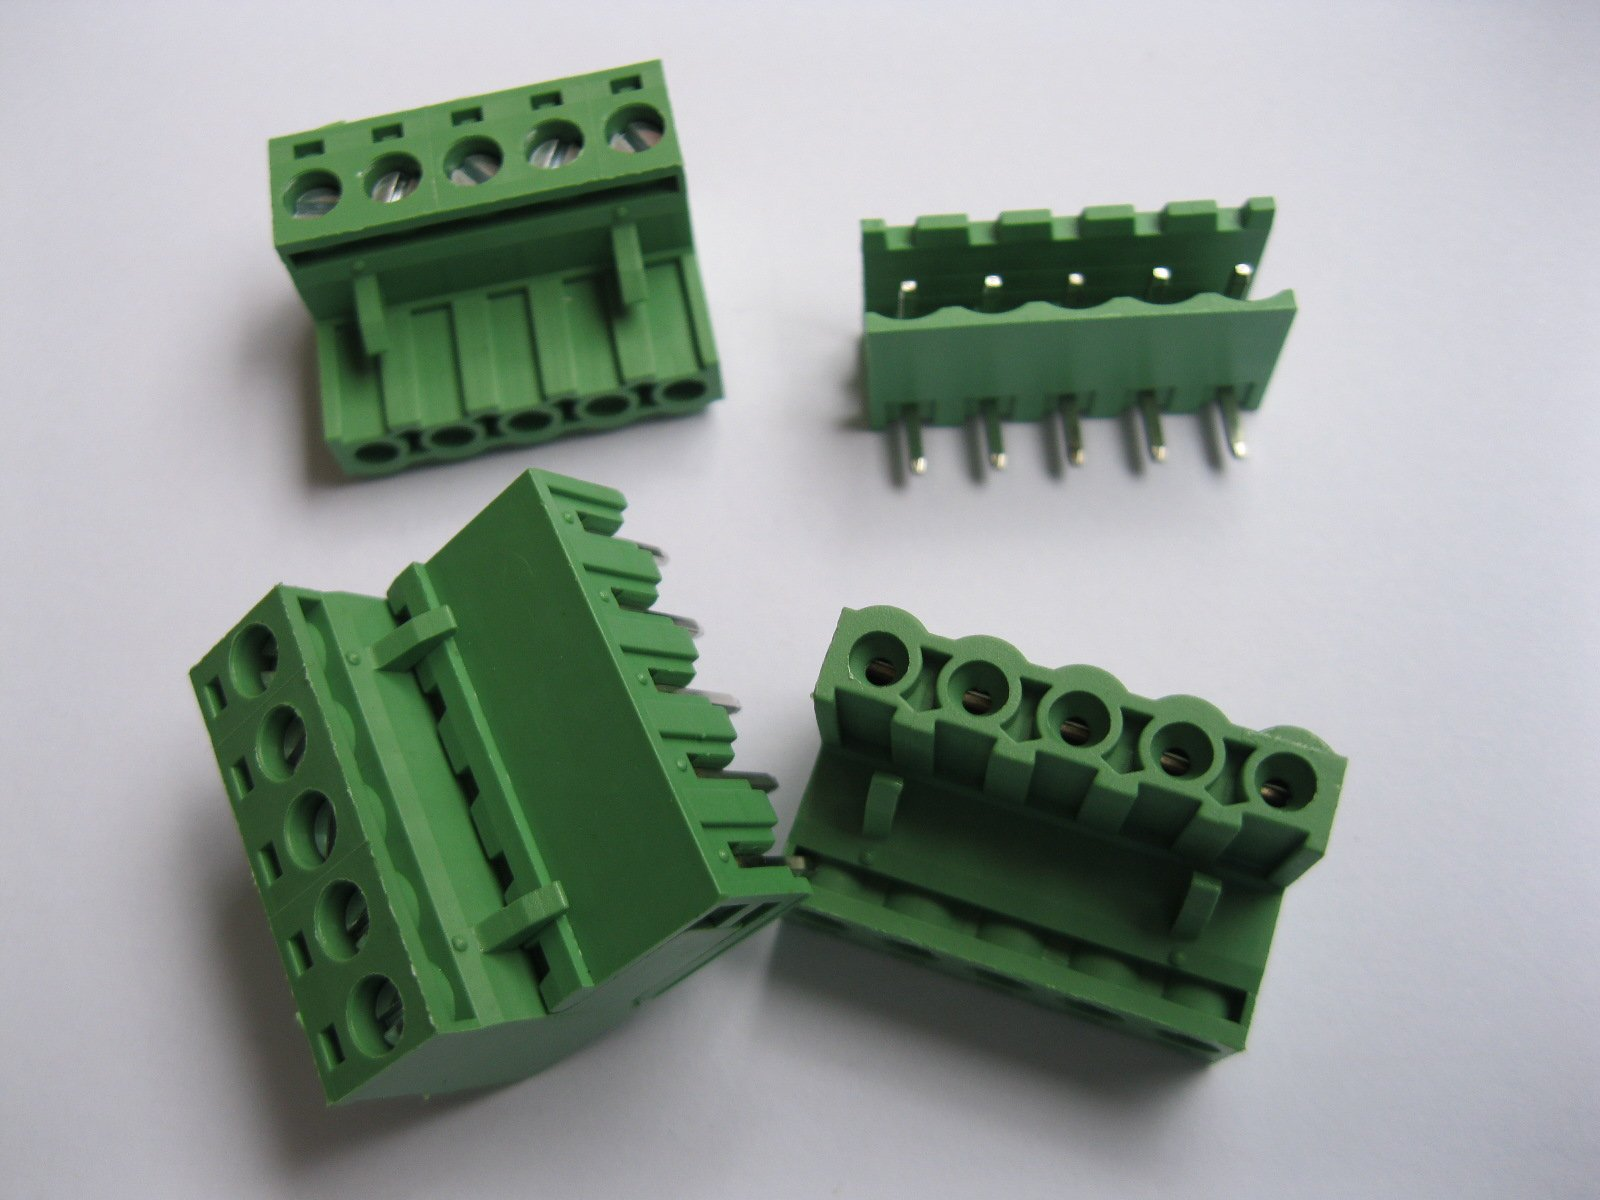 30 Pcs Pitch 5.08mm Angle 5 way/pin Screw Terminal Block Connector w/ Angle-pin Green Color Pluggable Type Skywalking